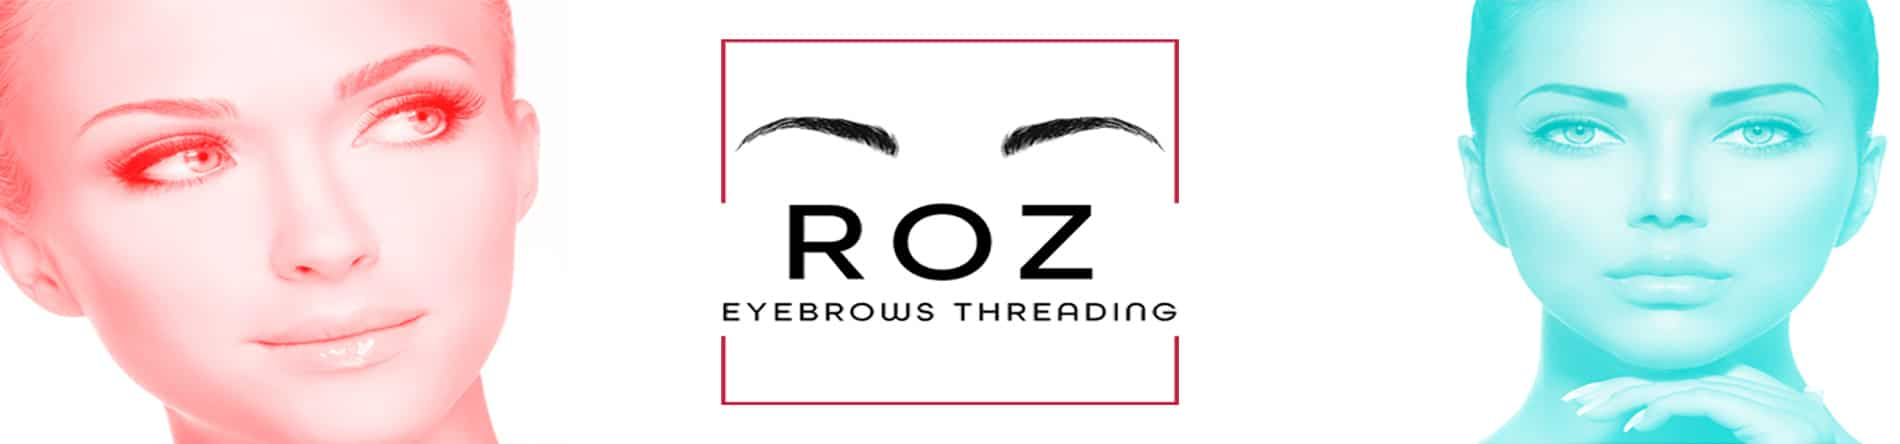 eyebrows threading miami